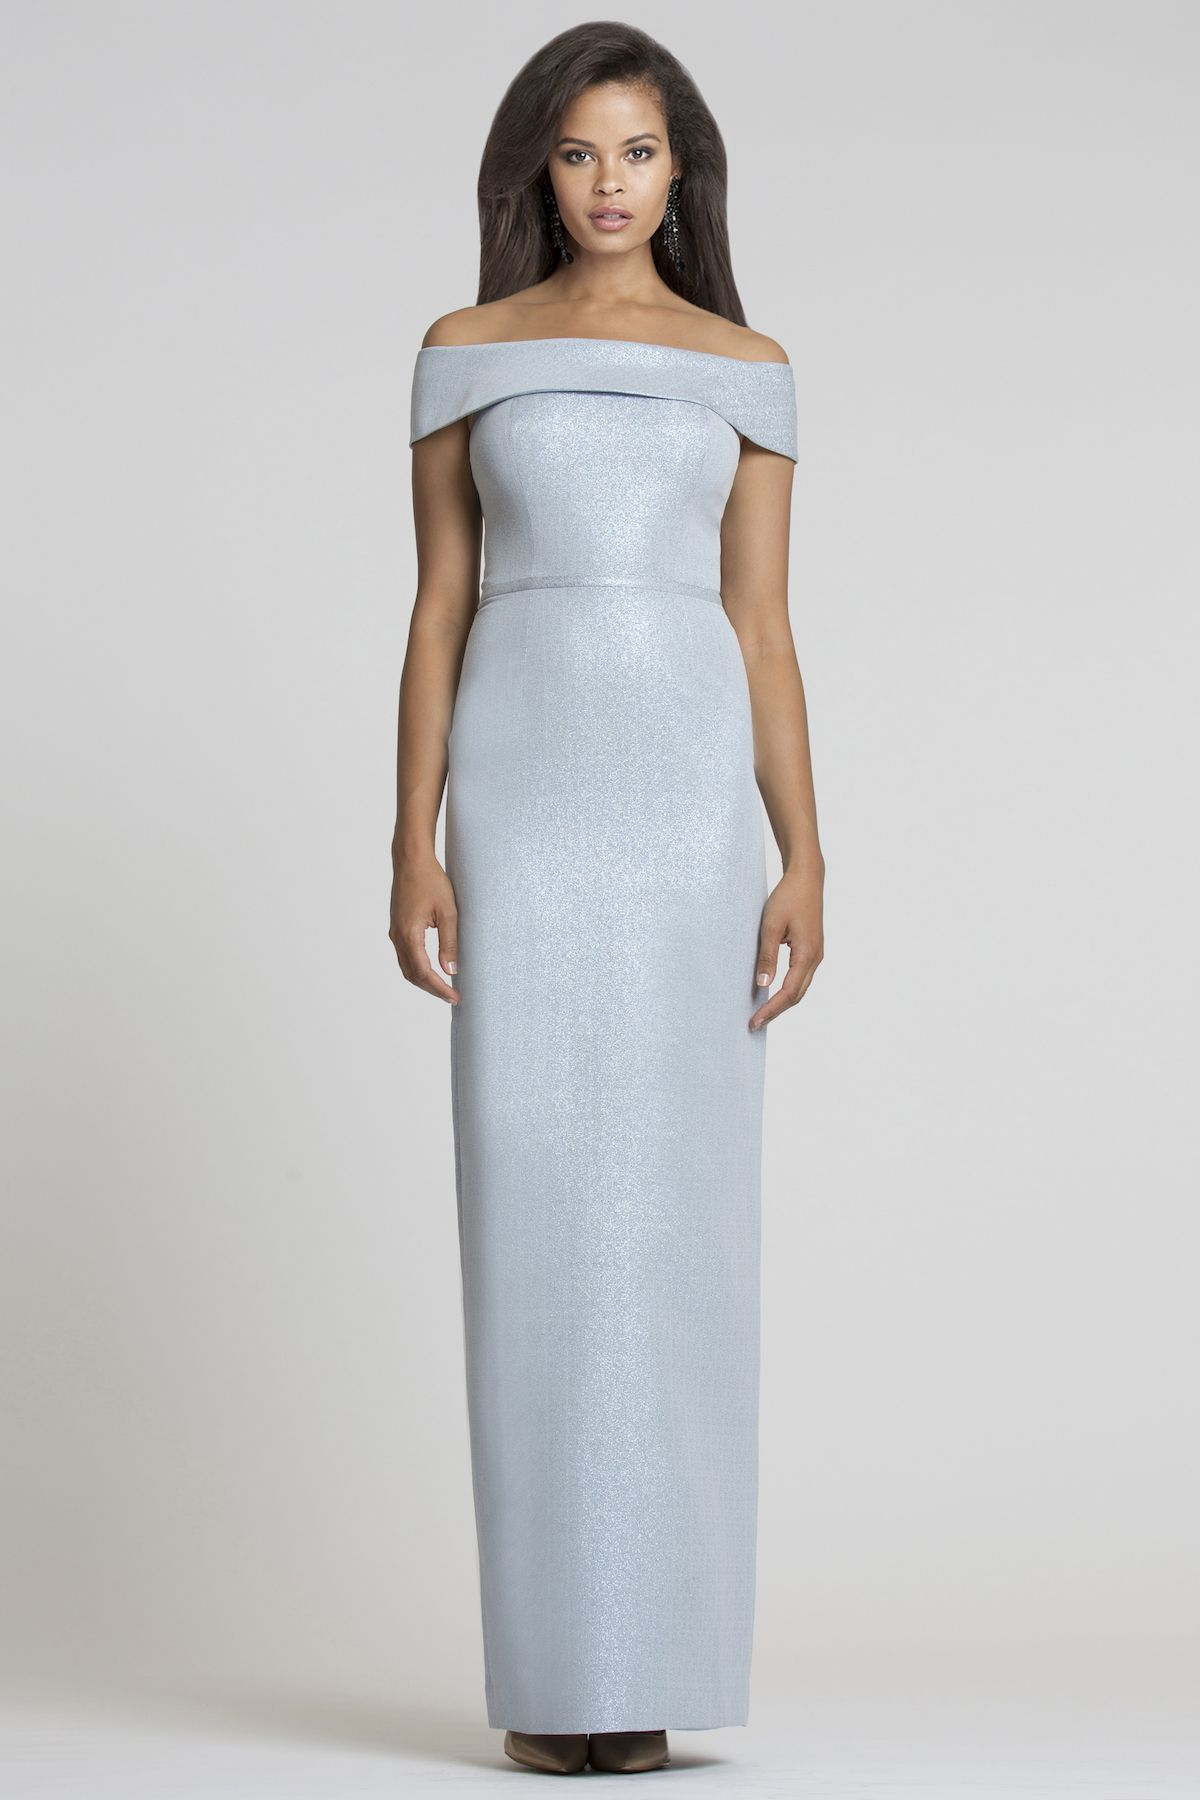 Stunning ice blue mother of the bride gown - #ad - #motherofthebride ...